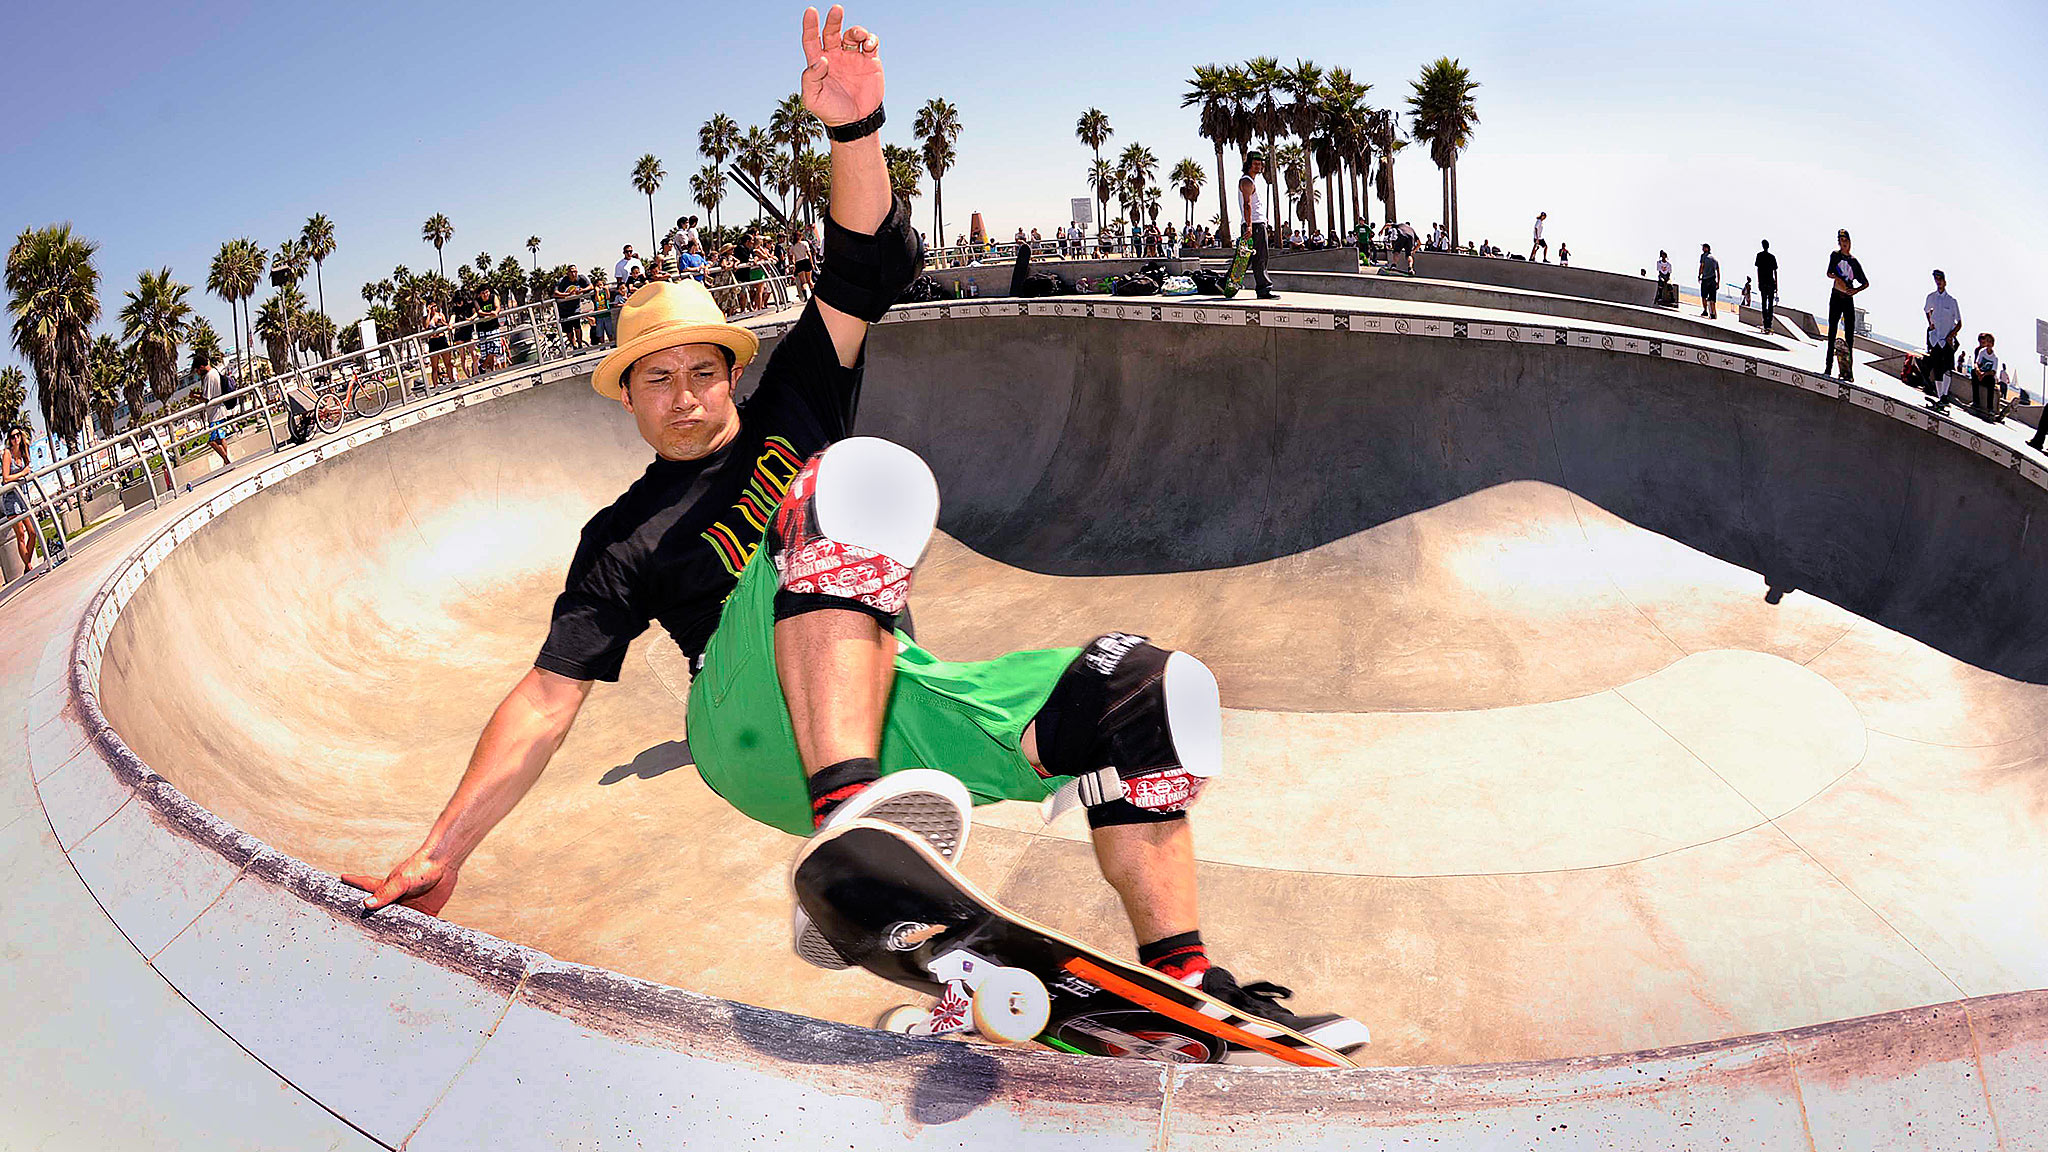 California Wallpaper Iphone 7 Skateboarding Wallpapers High Quality Download Free